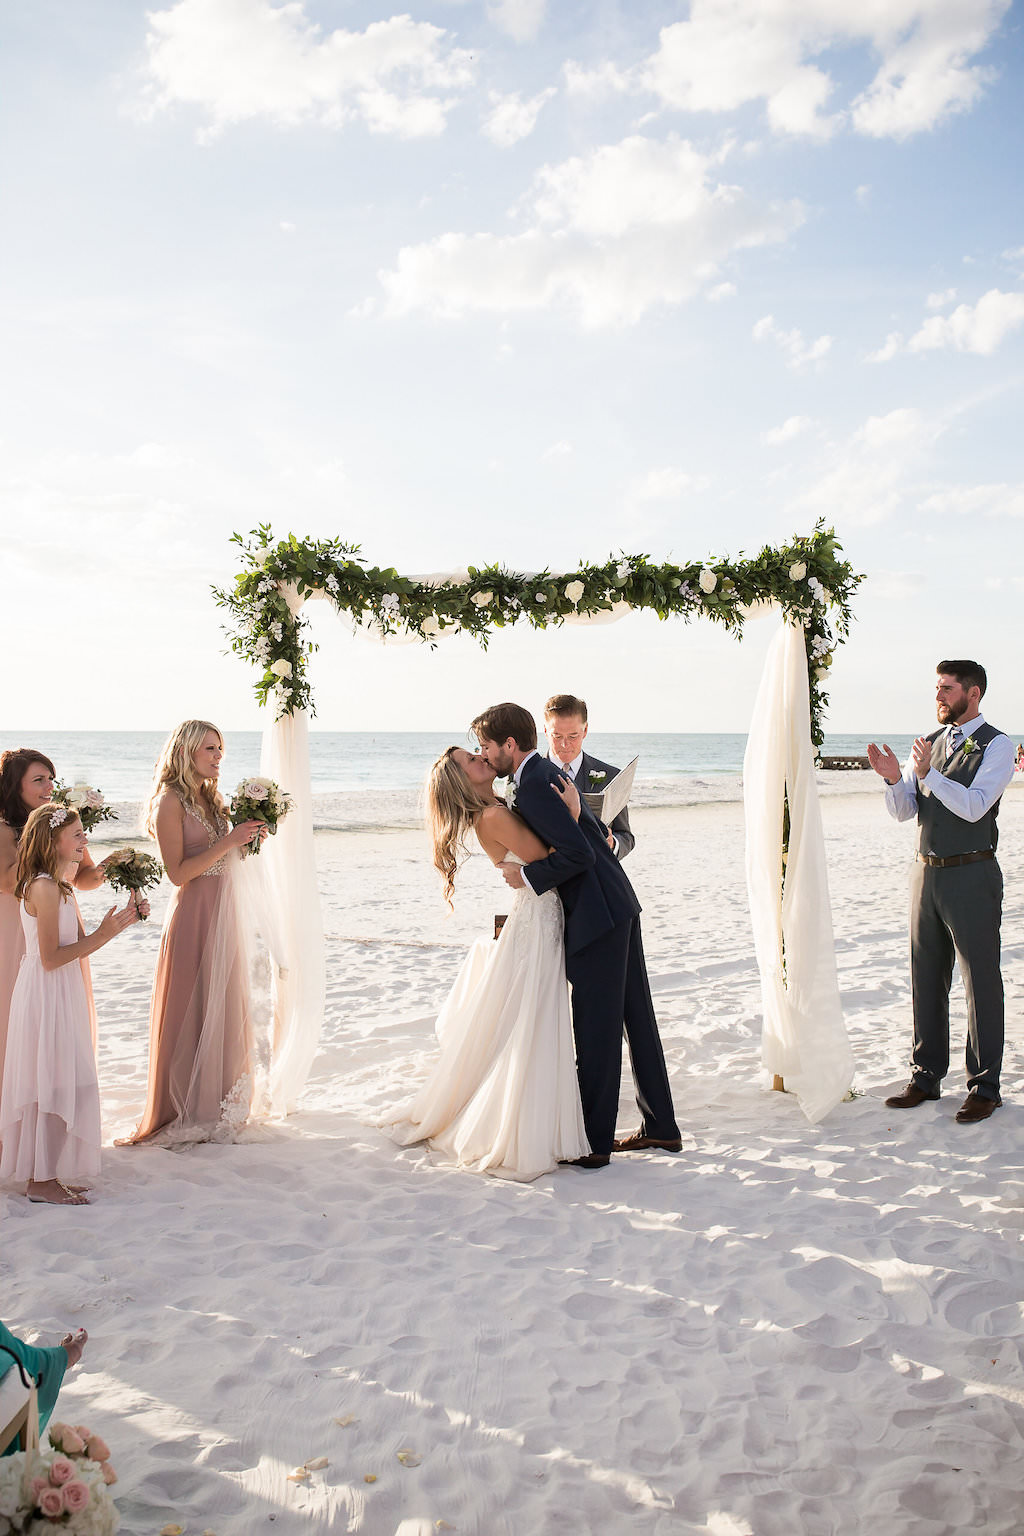 Bride and Groom First Kiss with Ceremony Greenery and White Flower Accented Wedding Arch with White Draping   Outdoor Siesta Key Beach Sarasota Wedding   Cat Pennenga Photography